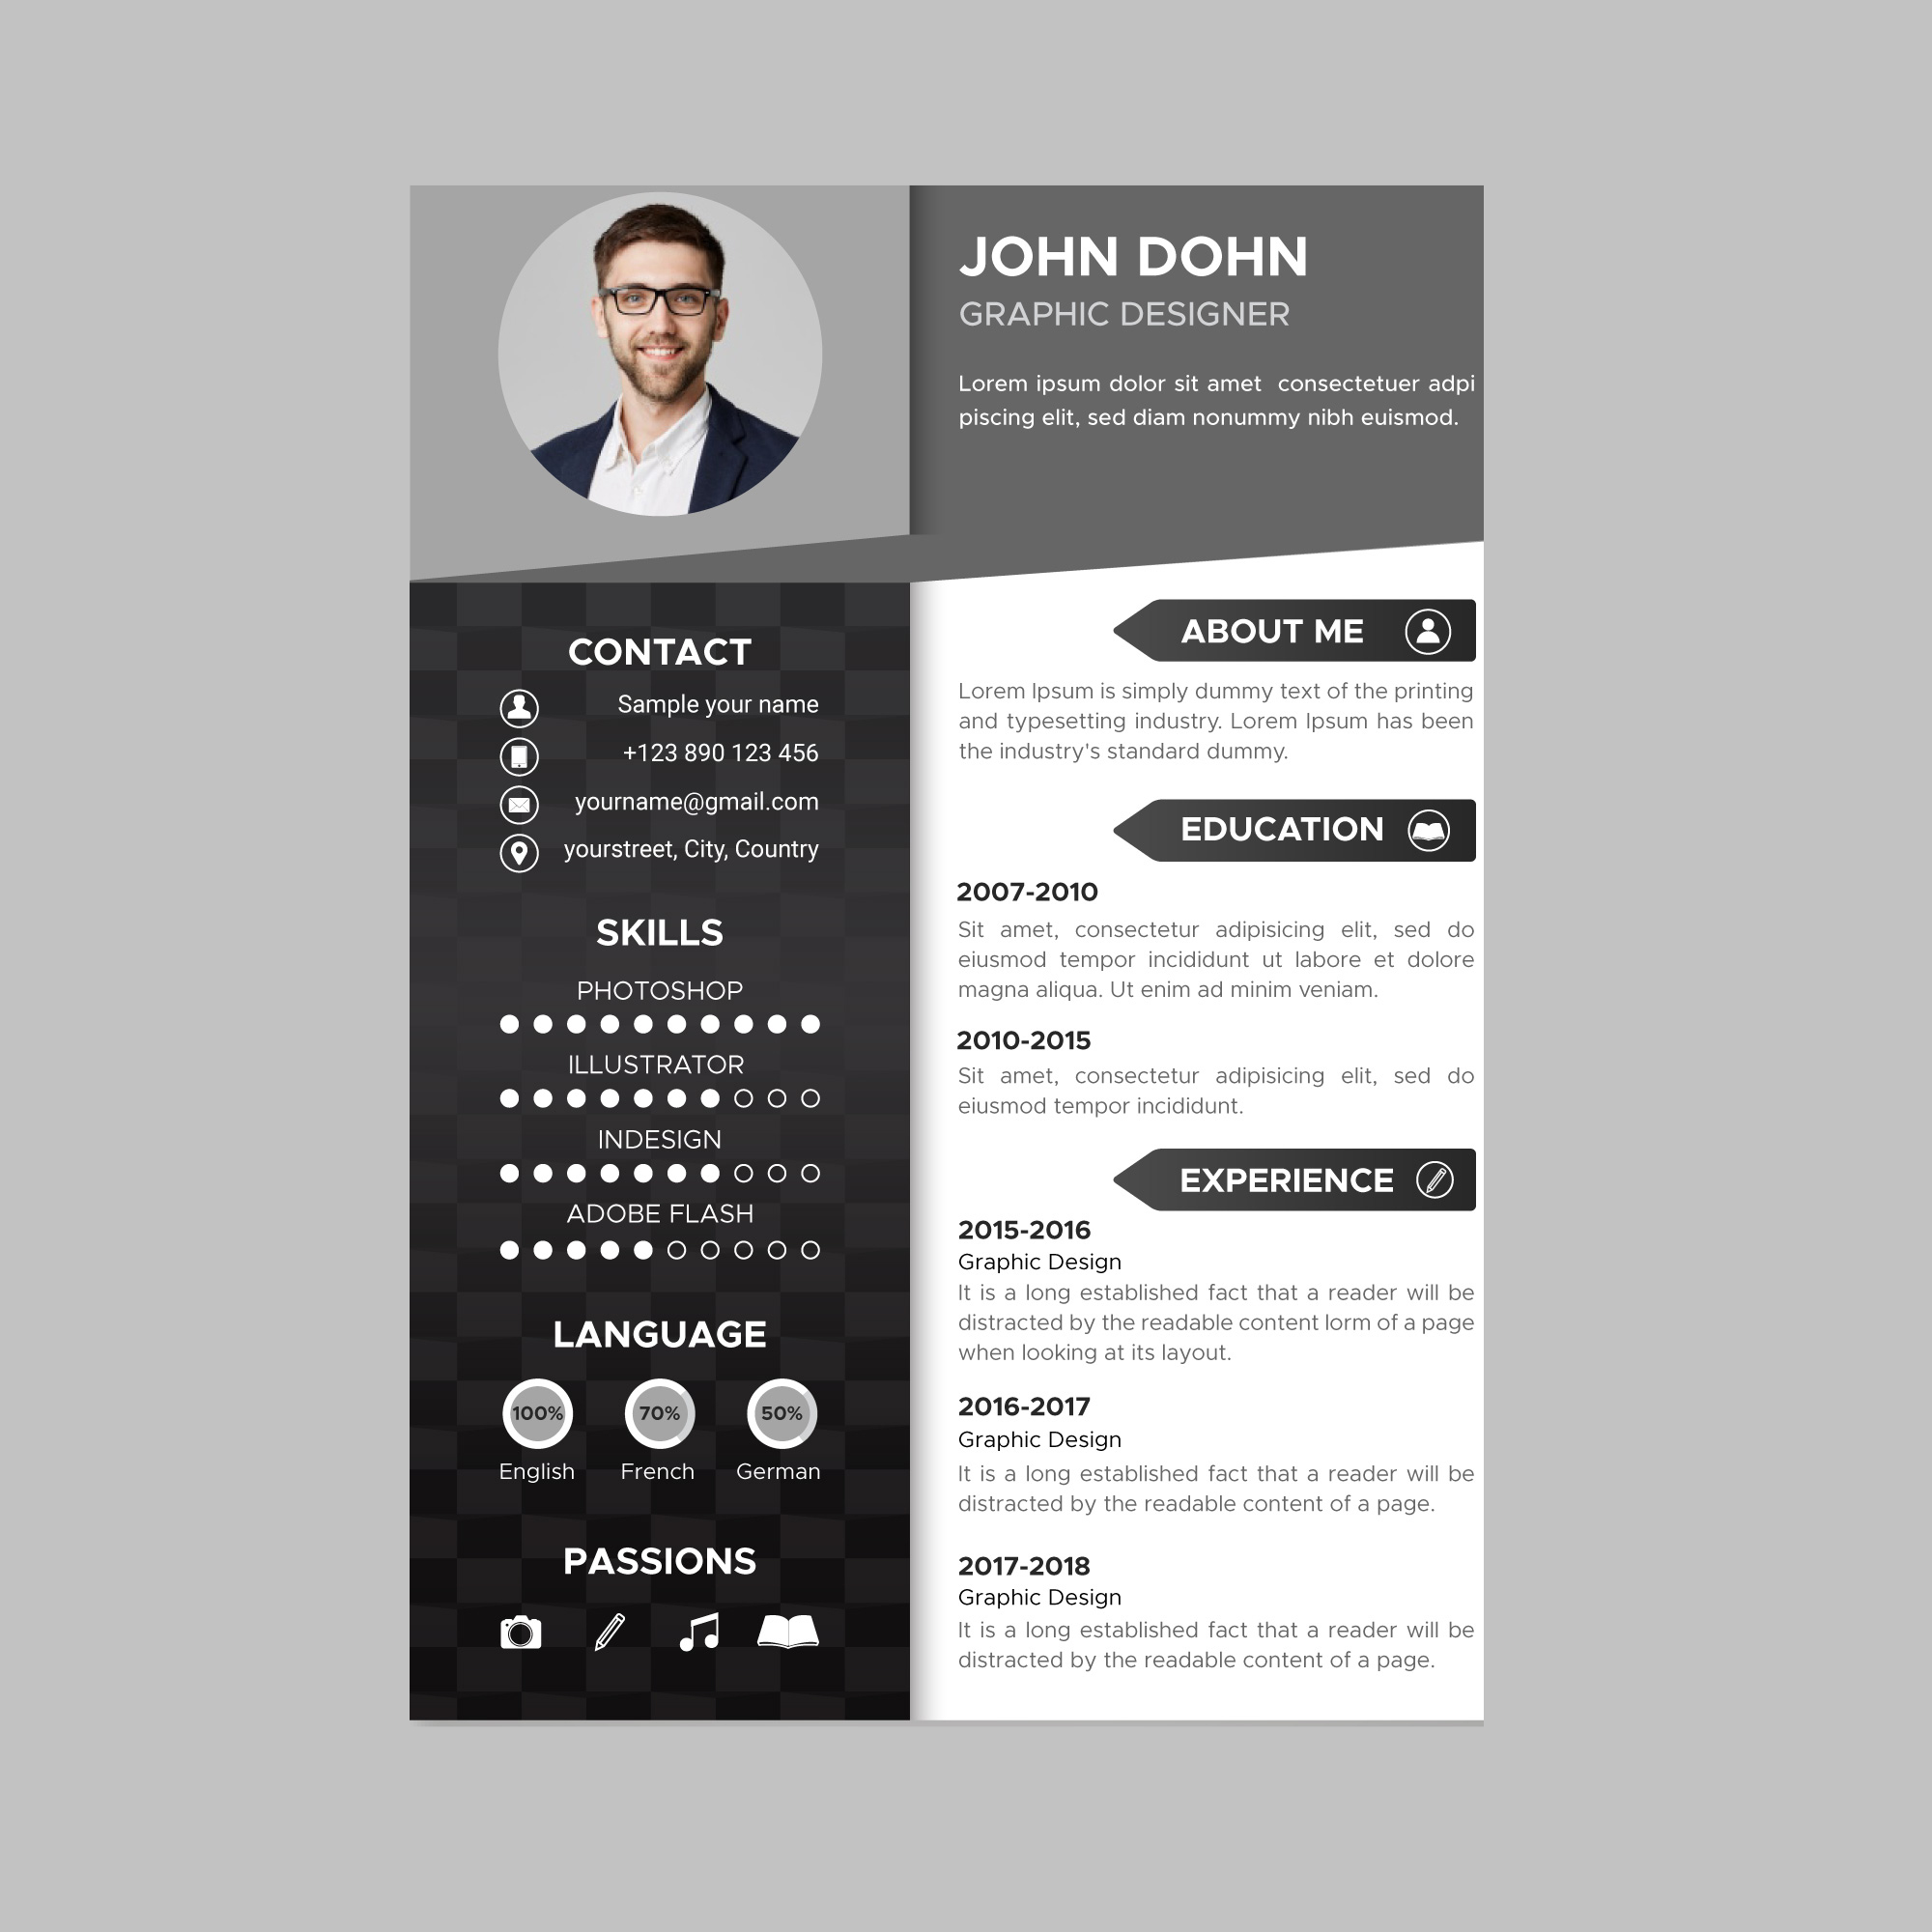 Design a Stunning Resume and cover letter